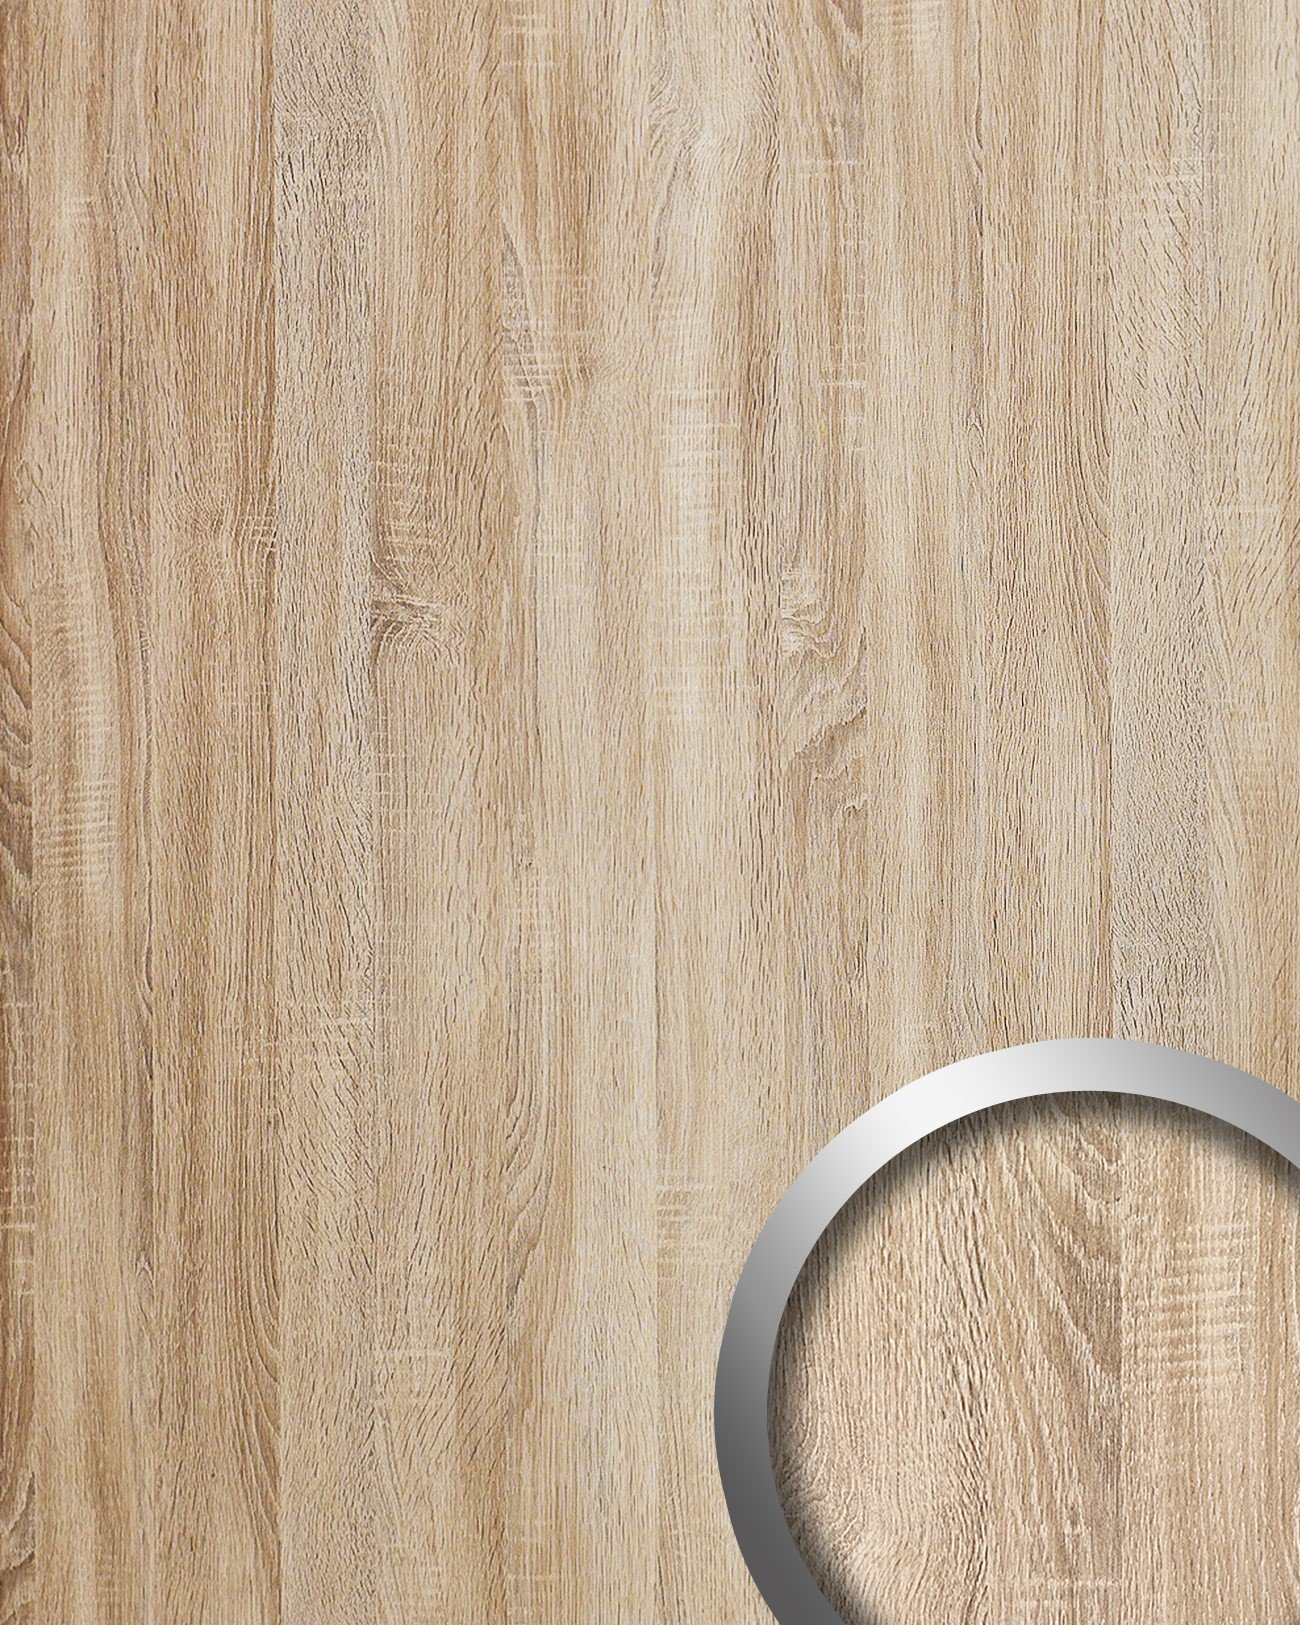 WallFace 17279 DECO OAK TREE Wall panel self-adhesive wood decor Luxury wallcovering self-adhesive beige | 2,60 sqm by Wallface (Image #1)